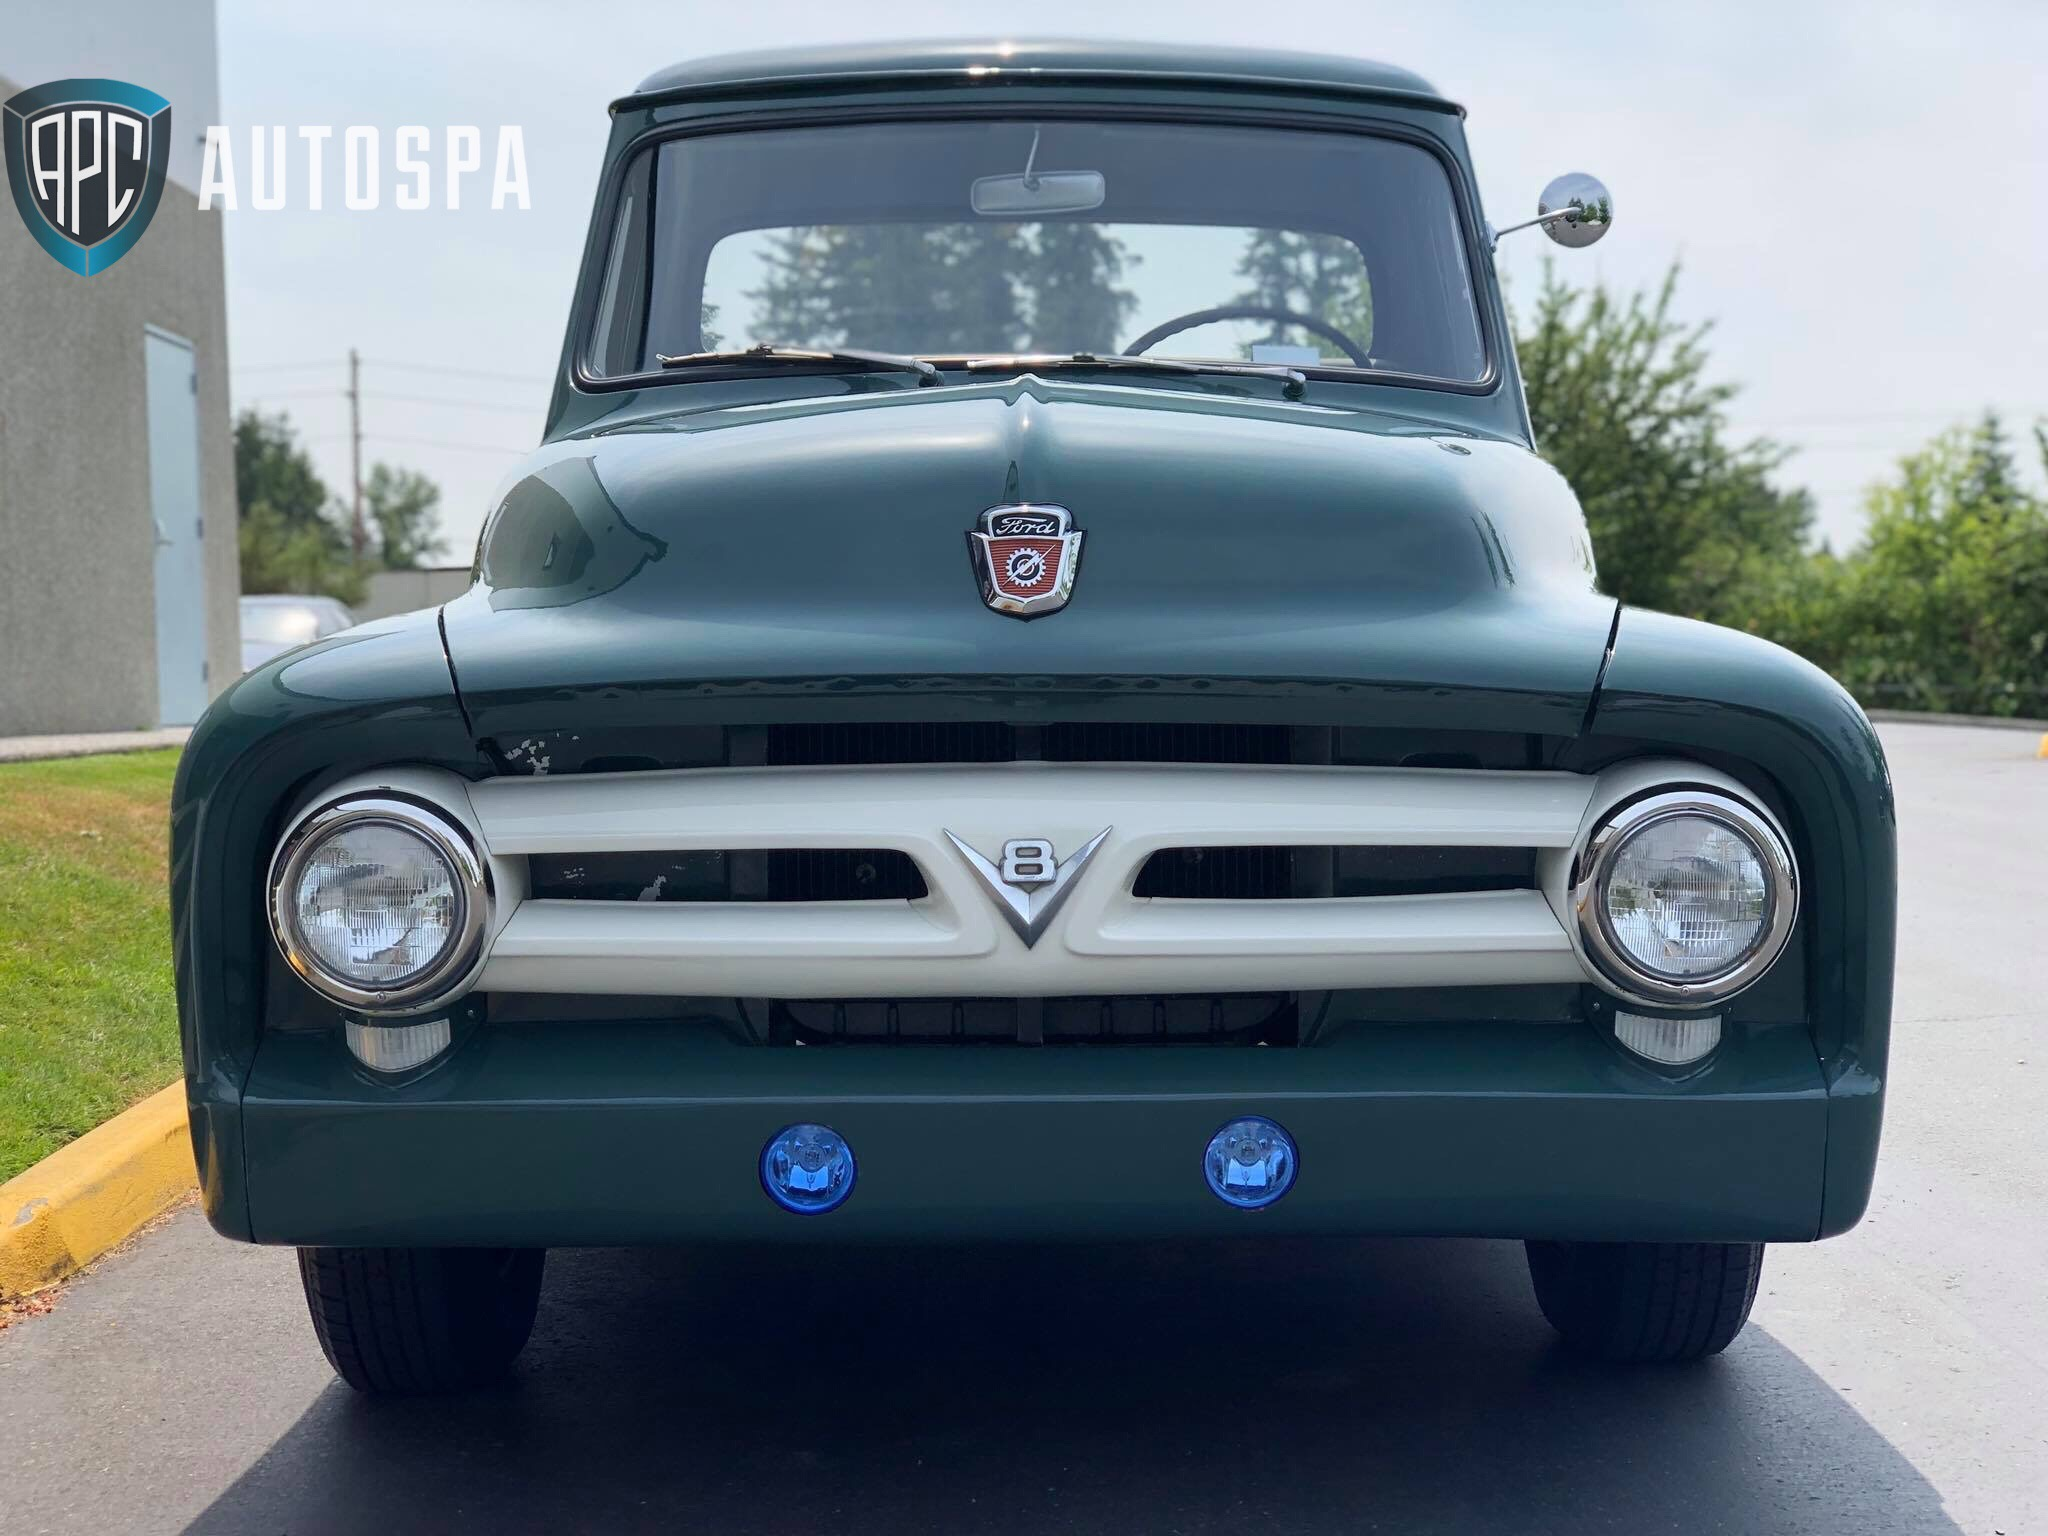 Ford F-100 Truck Detail